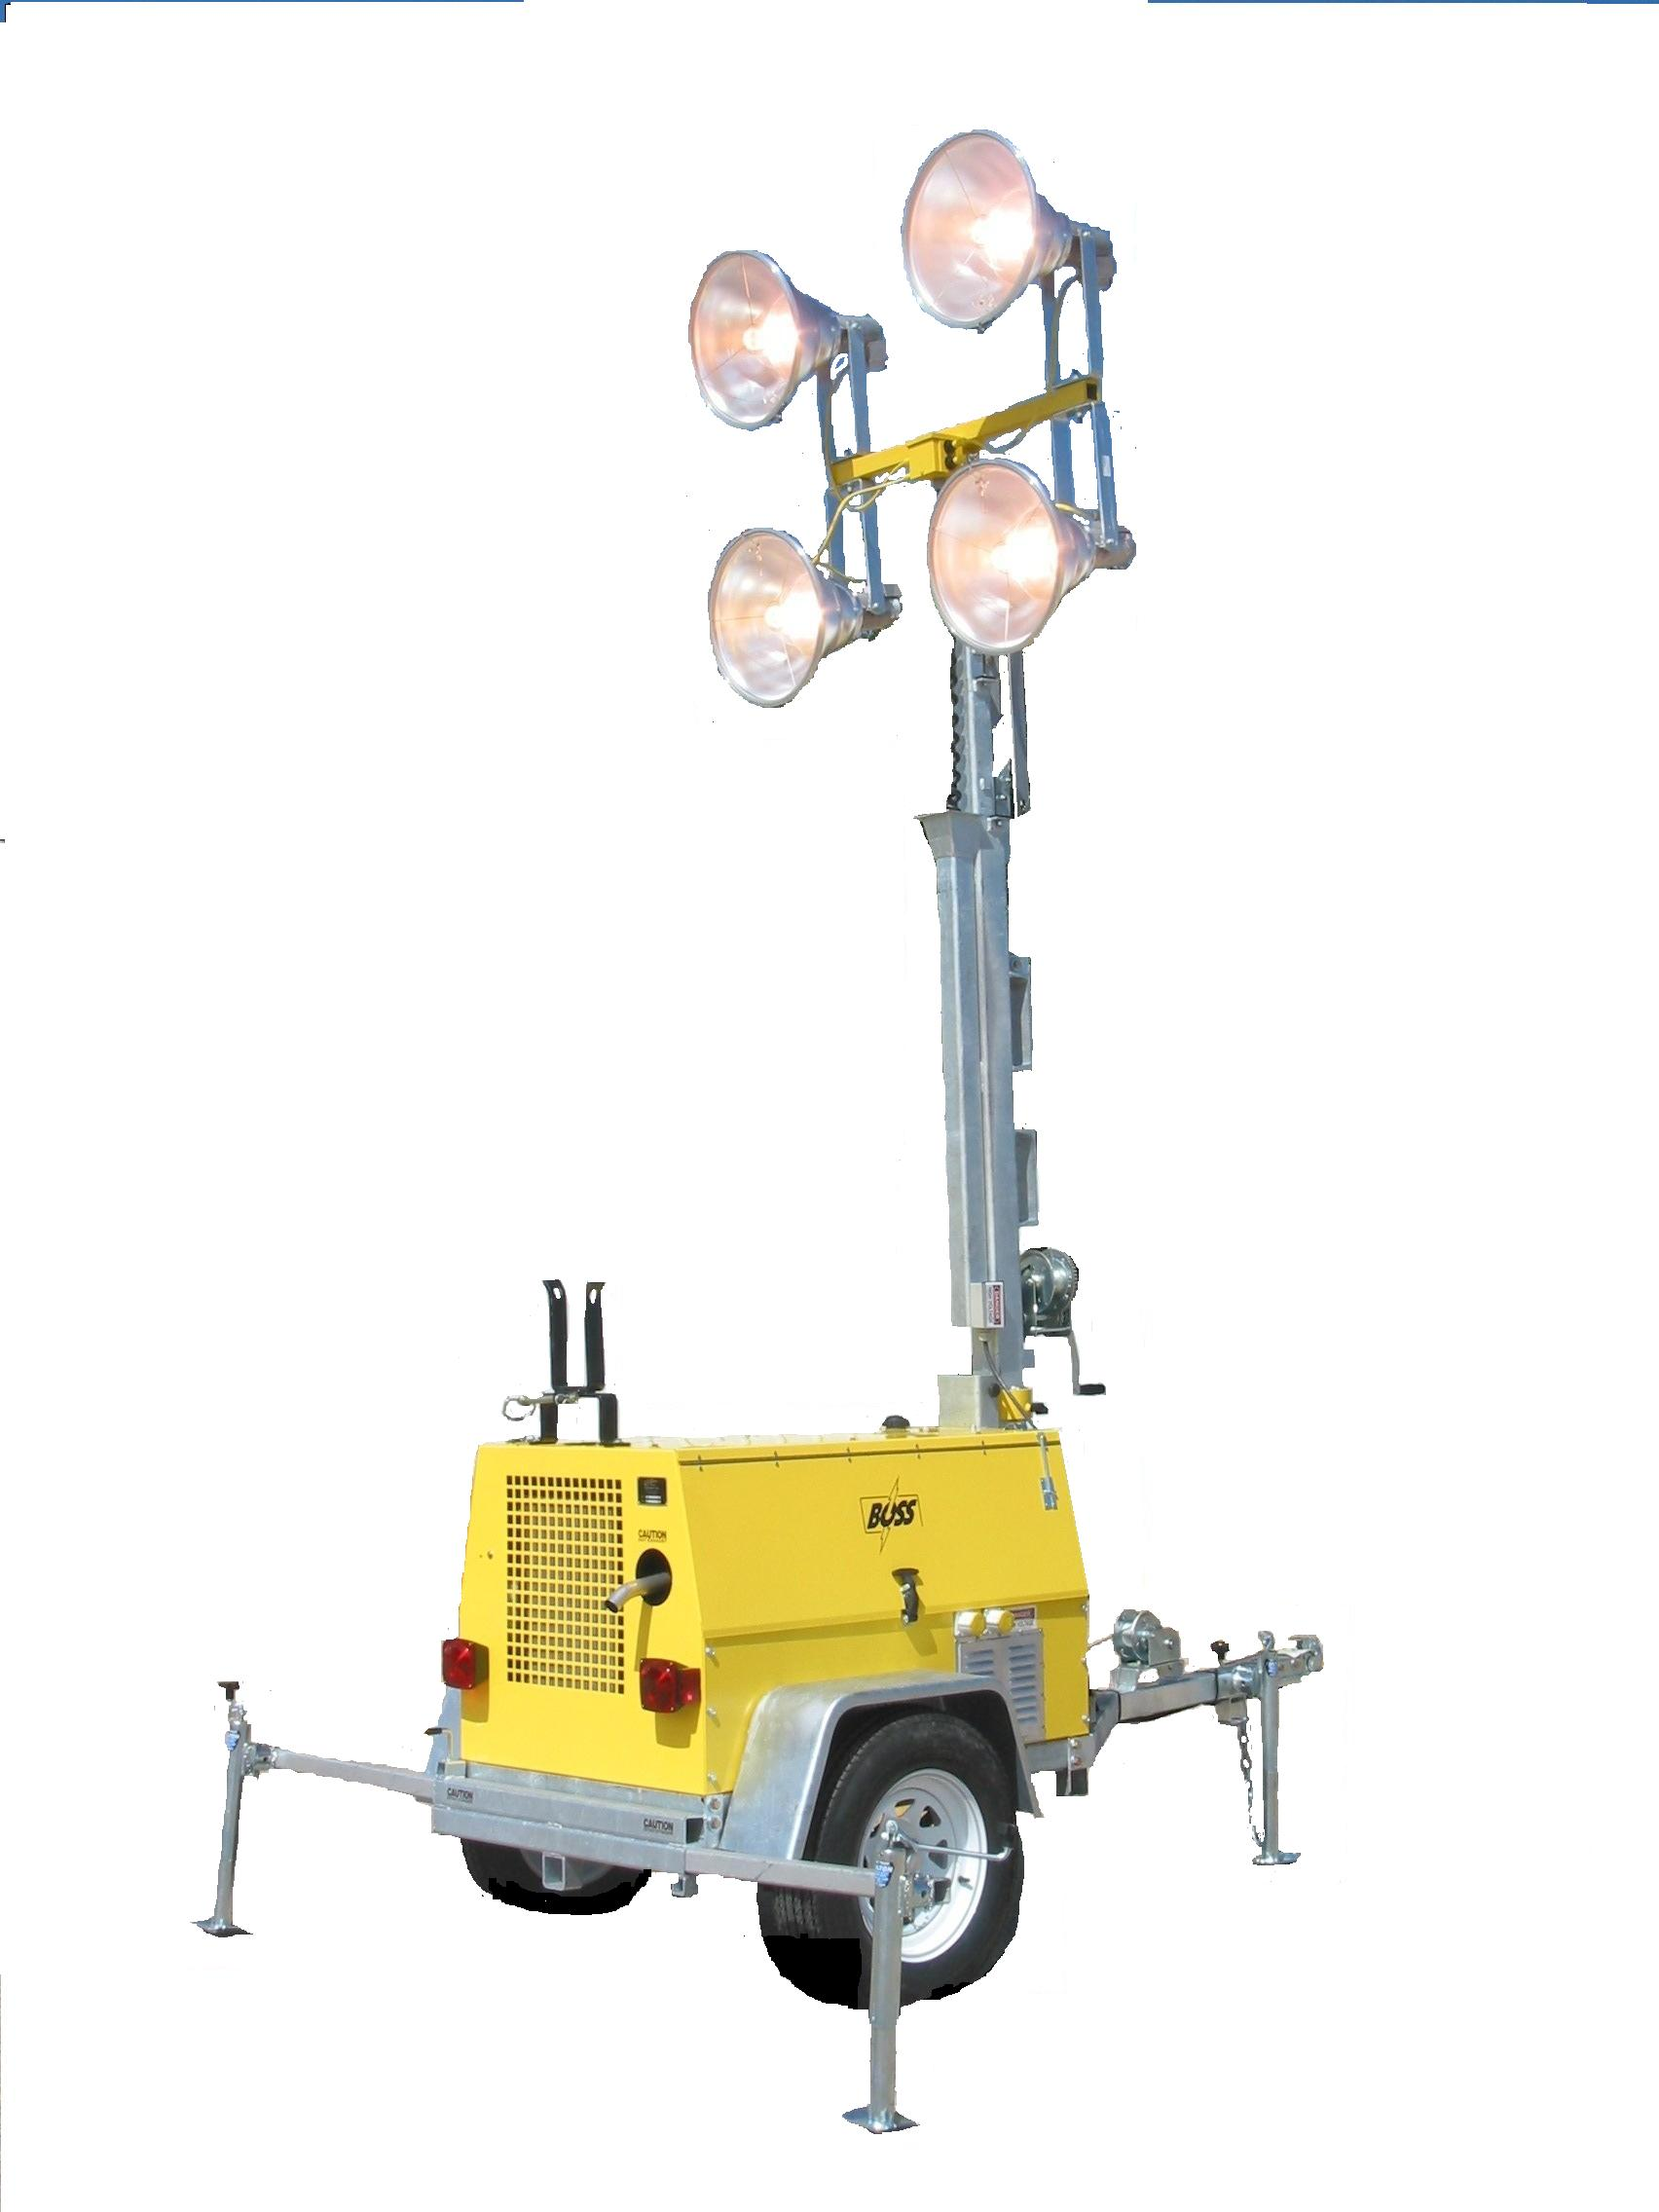 Rent Portable Refinery and Industrial Lighting Turn a Rounds